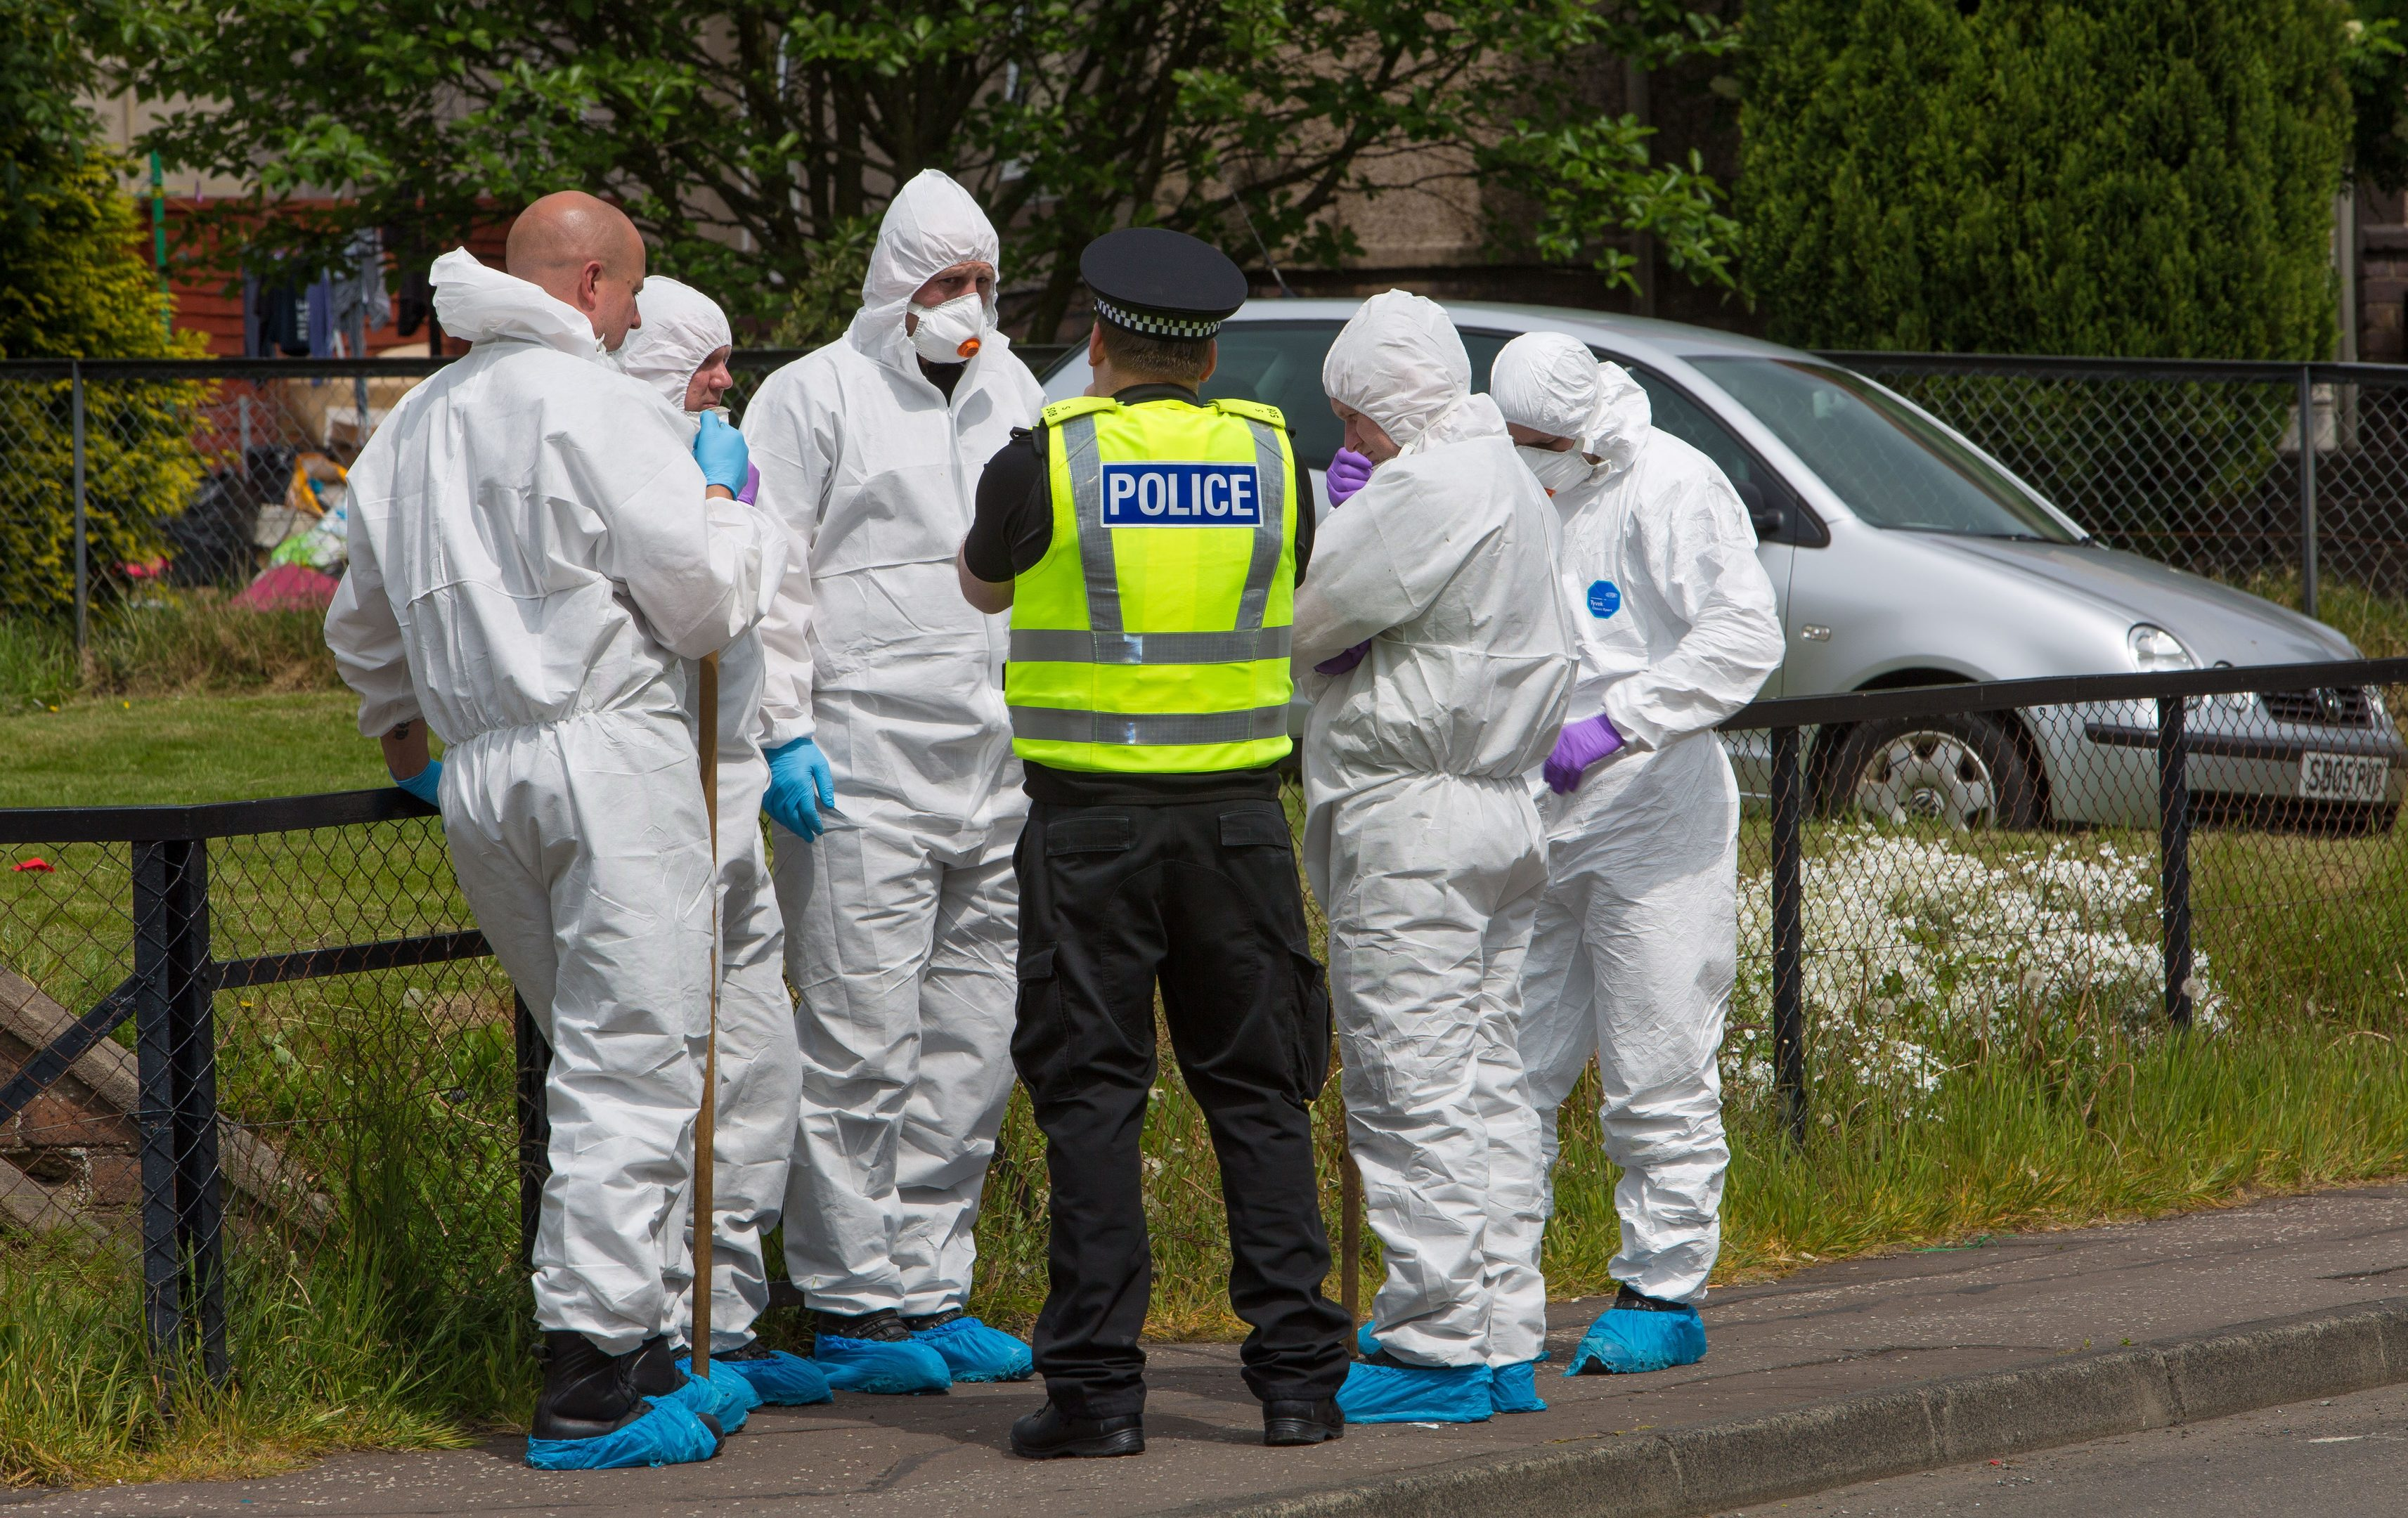 Forensic officers were prominent in the initial searches around Tweed Avenue in Kirkcaldy where Darren Adie was discovered.